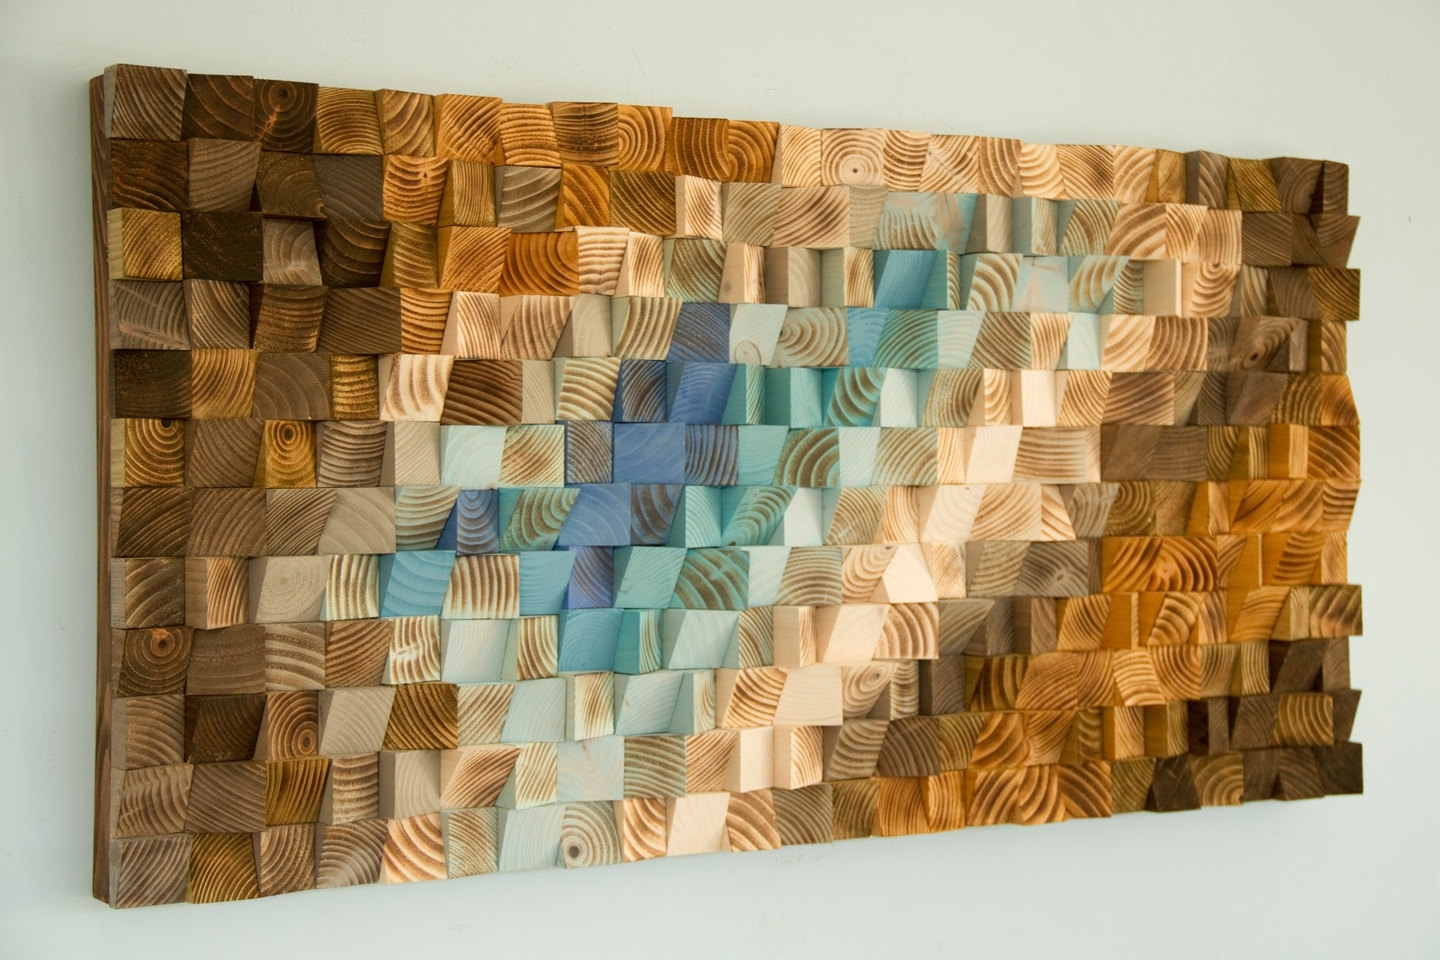 Modern Wood Wall Art, Wood Mosaic, Geometric Art, Wood Decor Throughout 2018 Wood Wall Art (View 9 of 15)